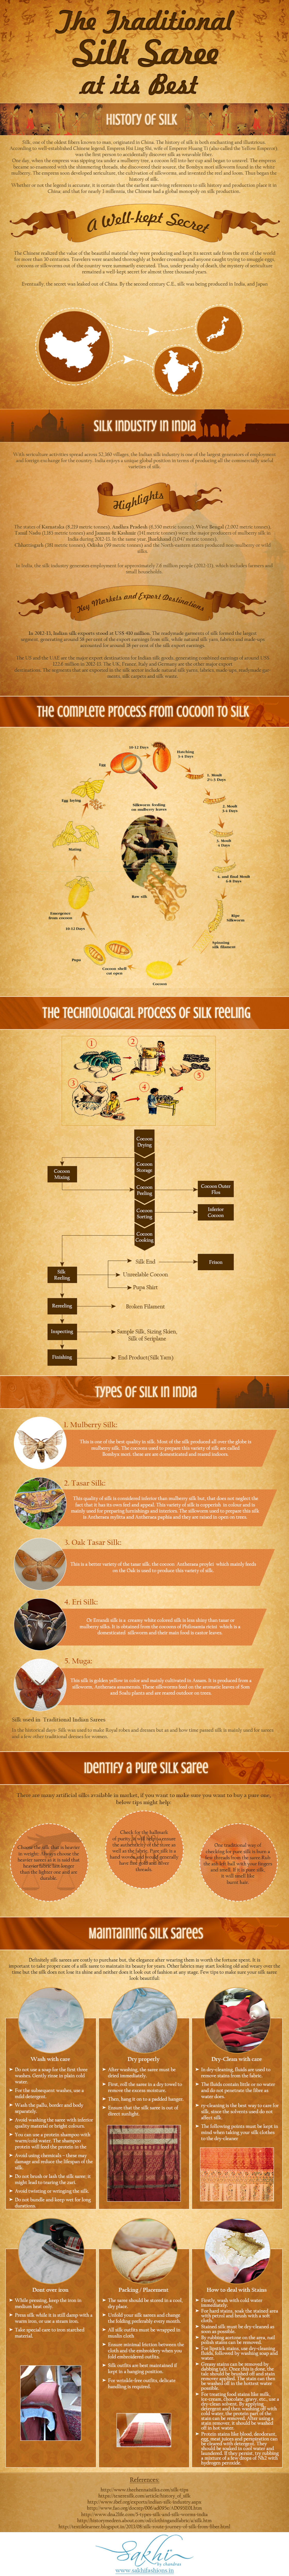 All You Should know about Silk Infographic